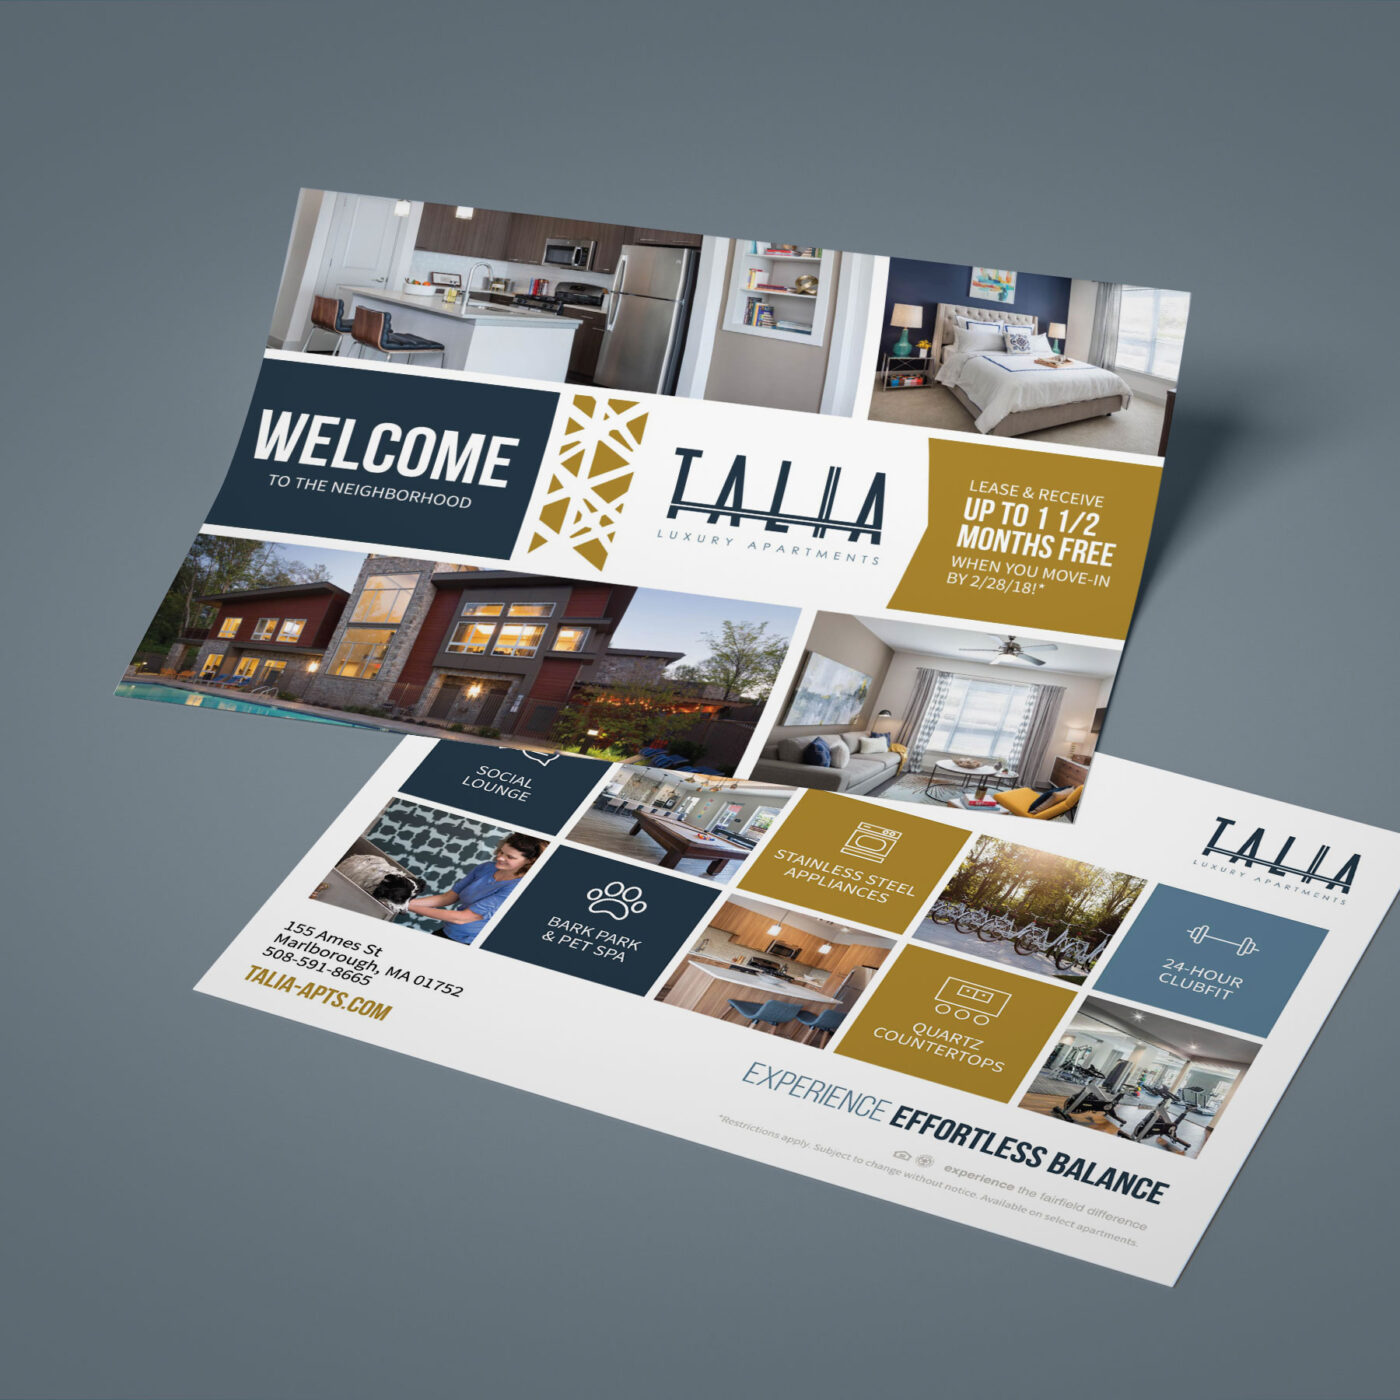 marketing collateral postcard or mailer